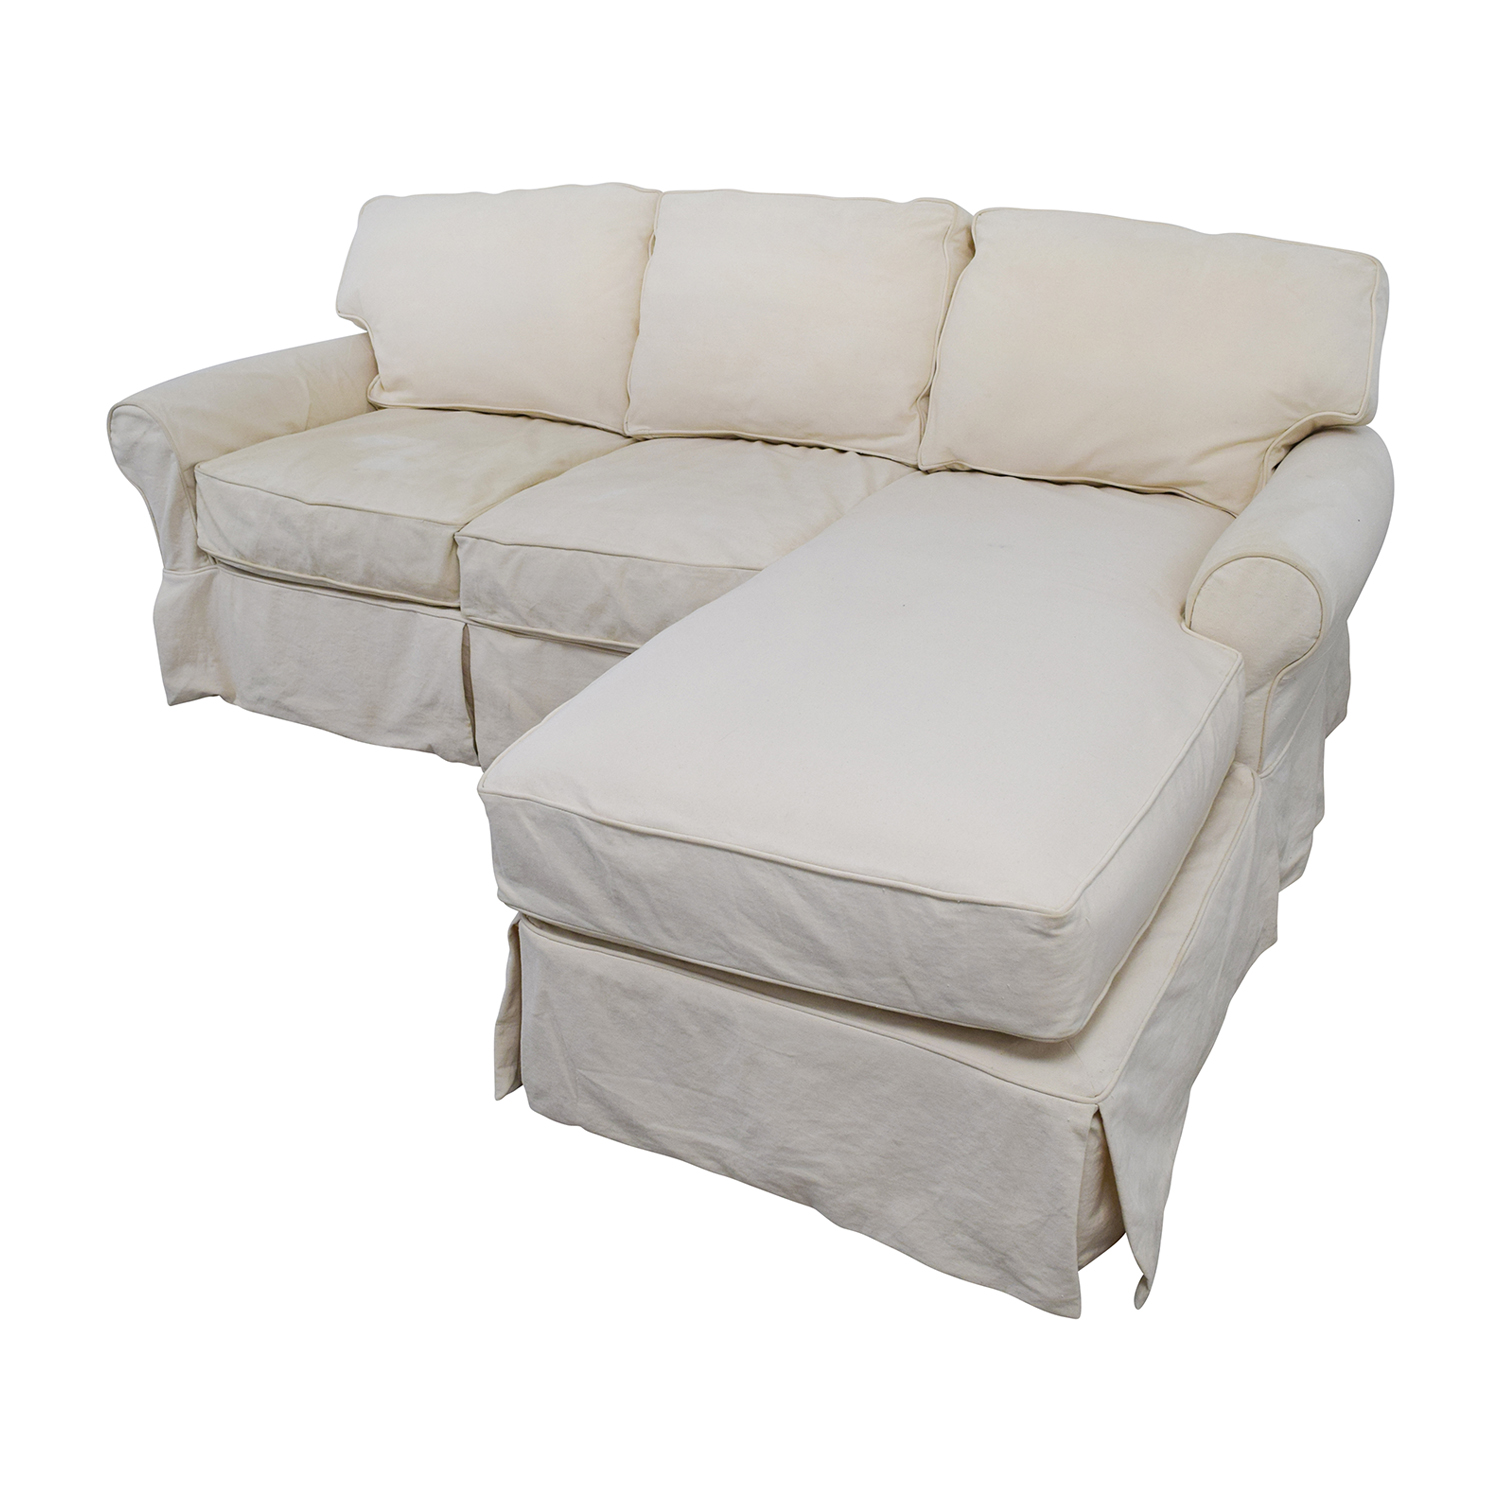 home decorators mayfair sofa review fabric online uk 90 off collection